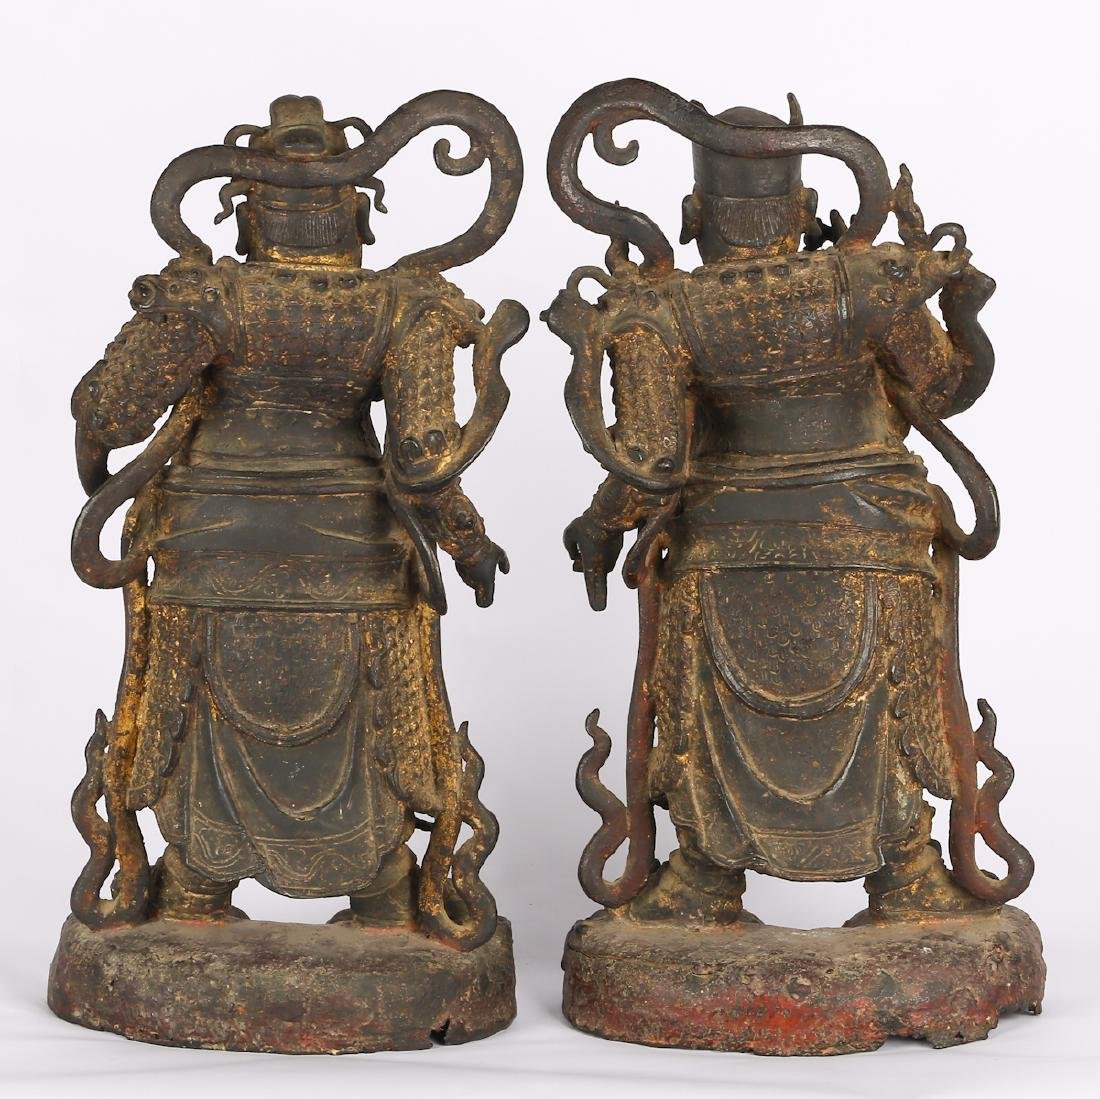 CHINESE TWO MING DYNASTY BRONZE FIGURE OF GUARDIAN - 3